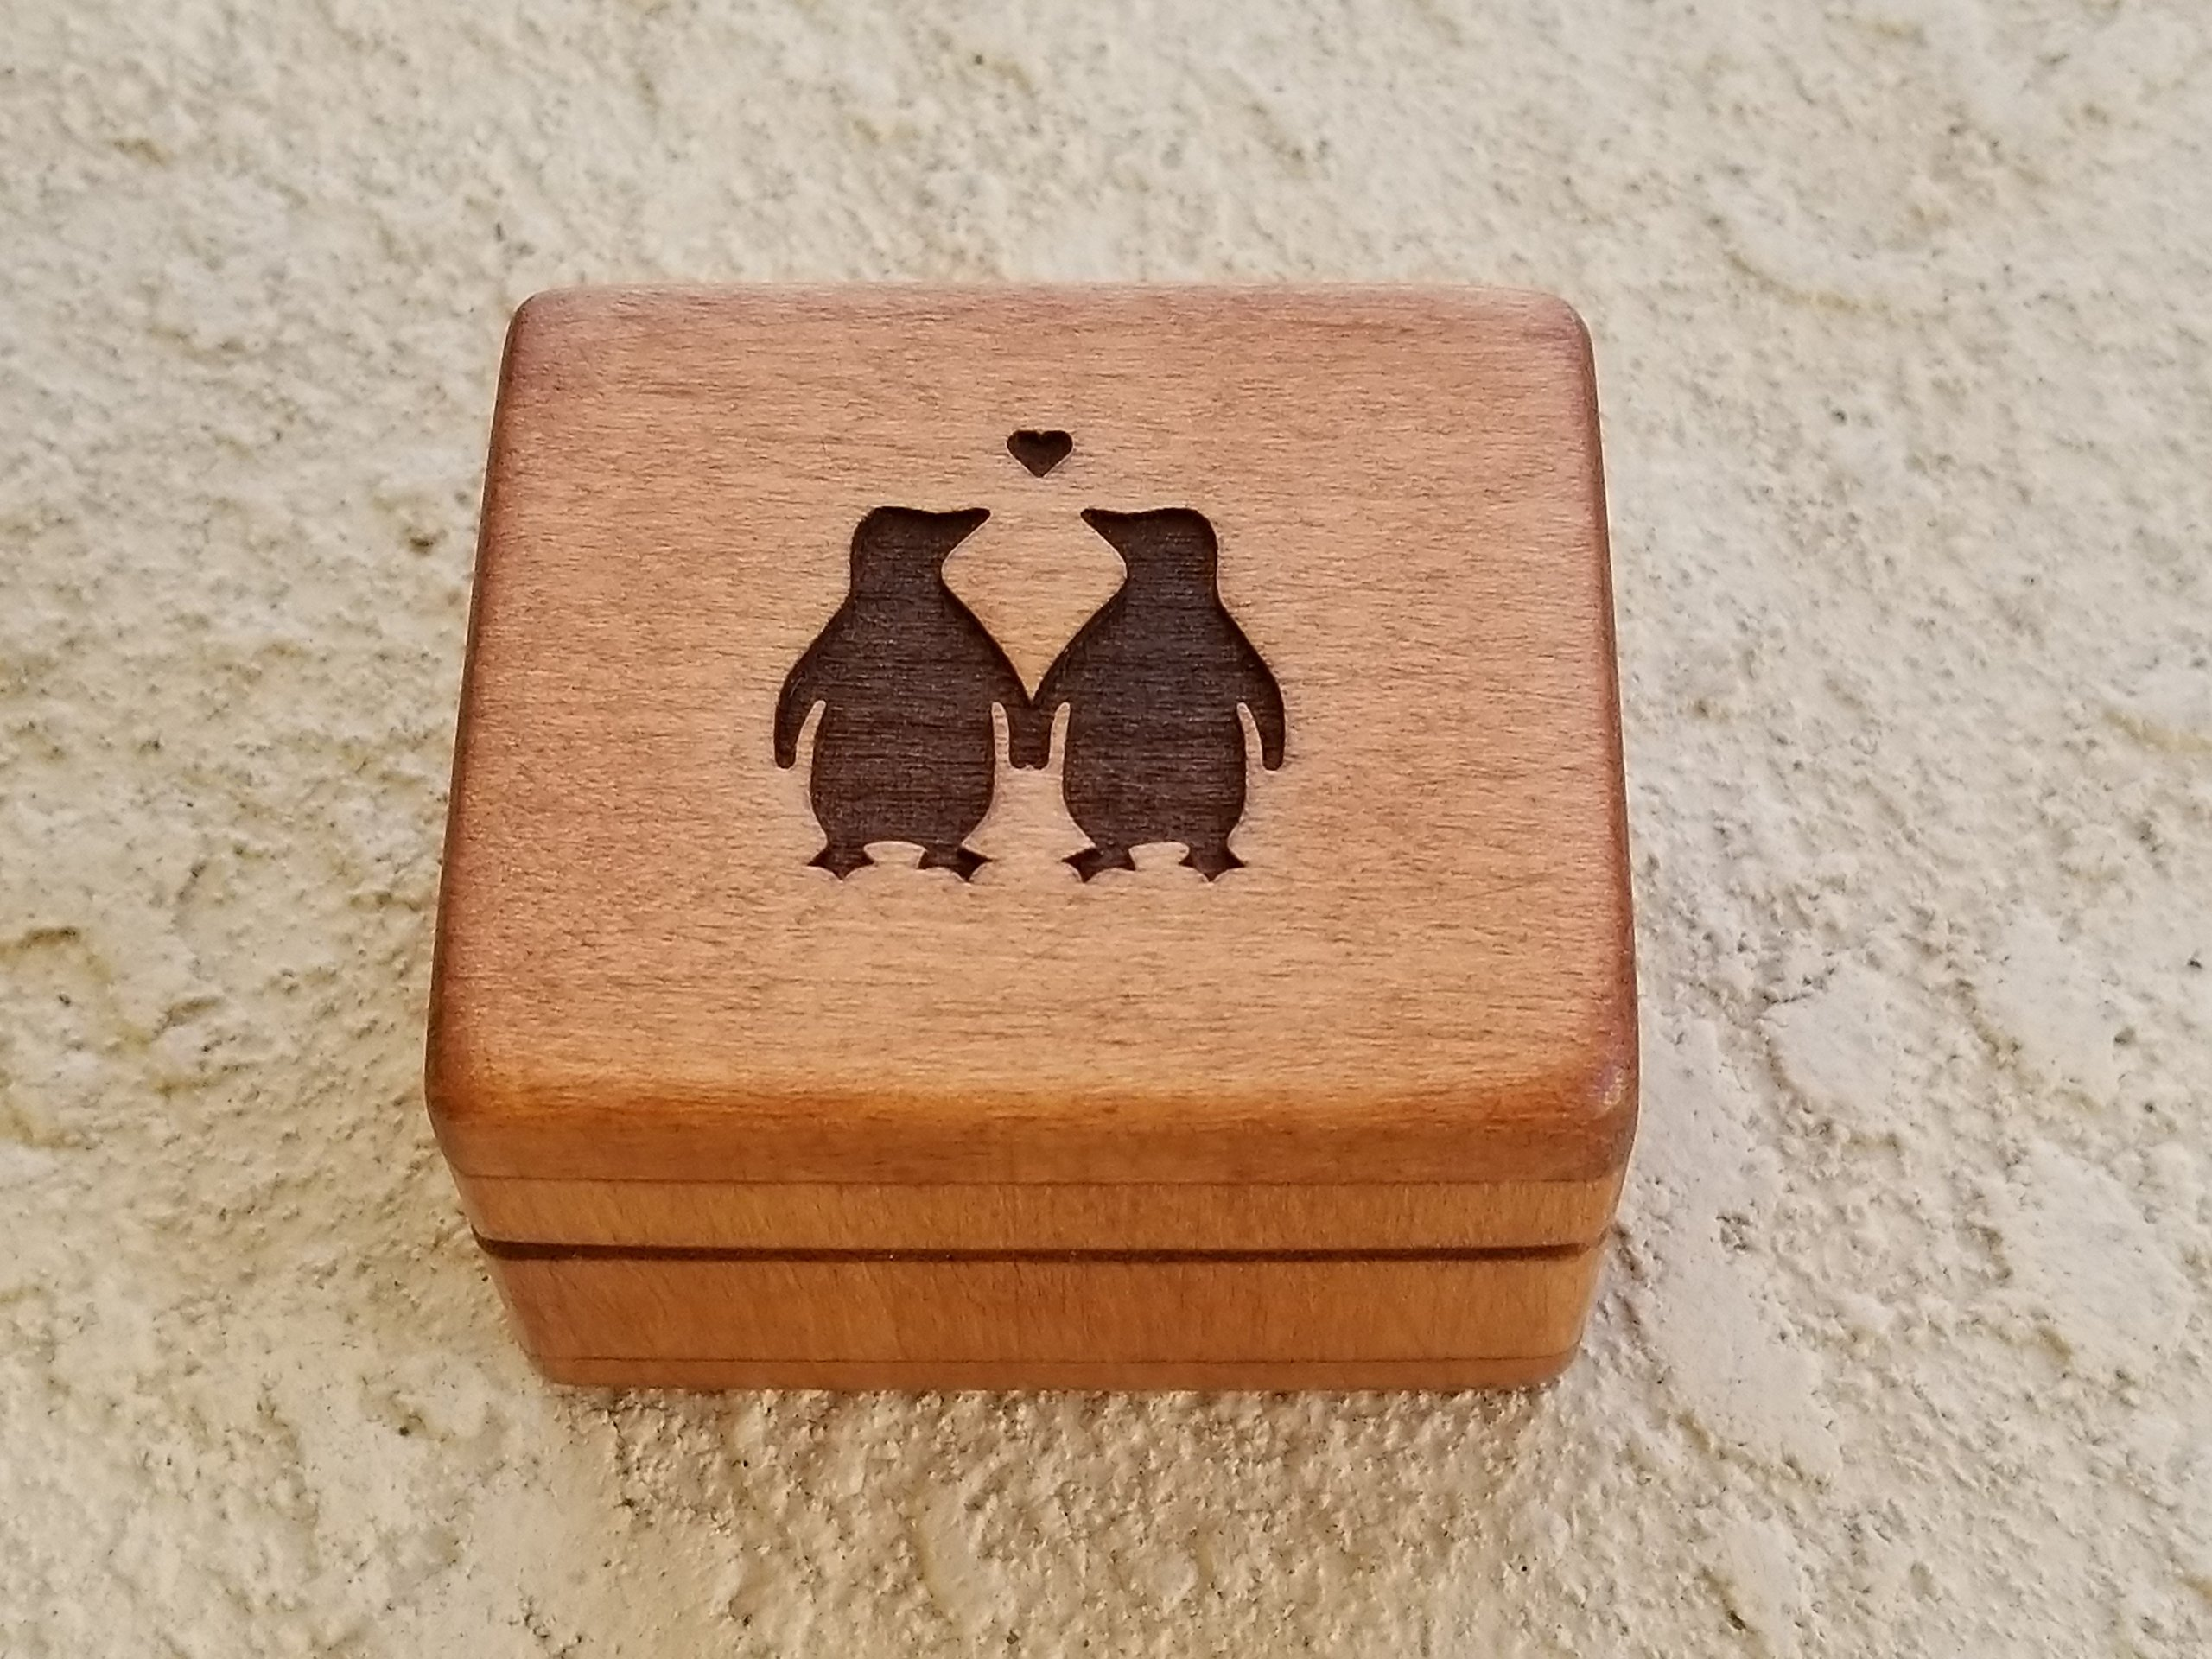 Custom engraved wooden ring box, love penguins, ring box, beach wedding, engagement ring box handmade by Simplycoolgifts, Valentine's day gift